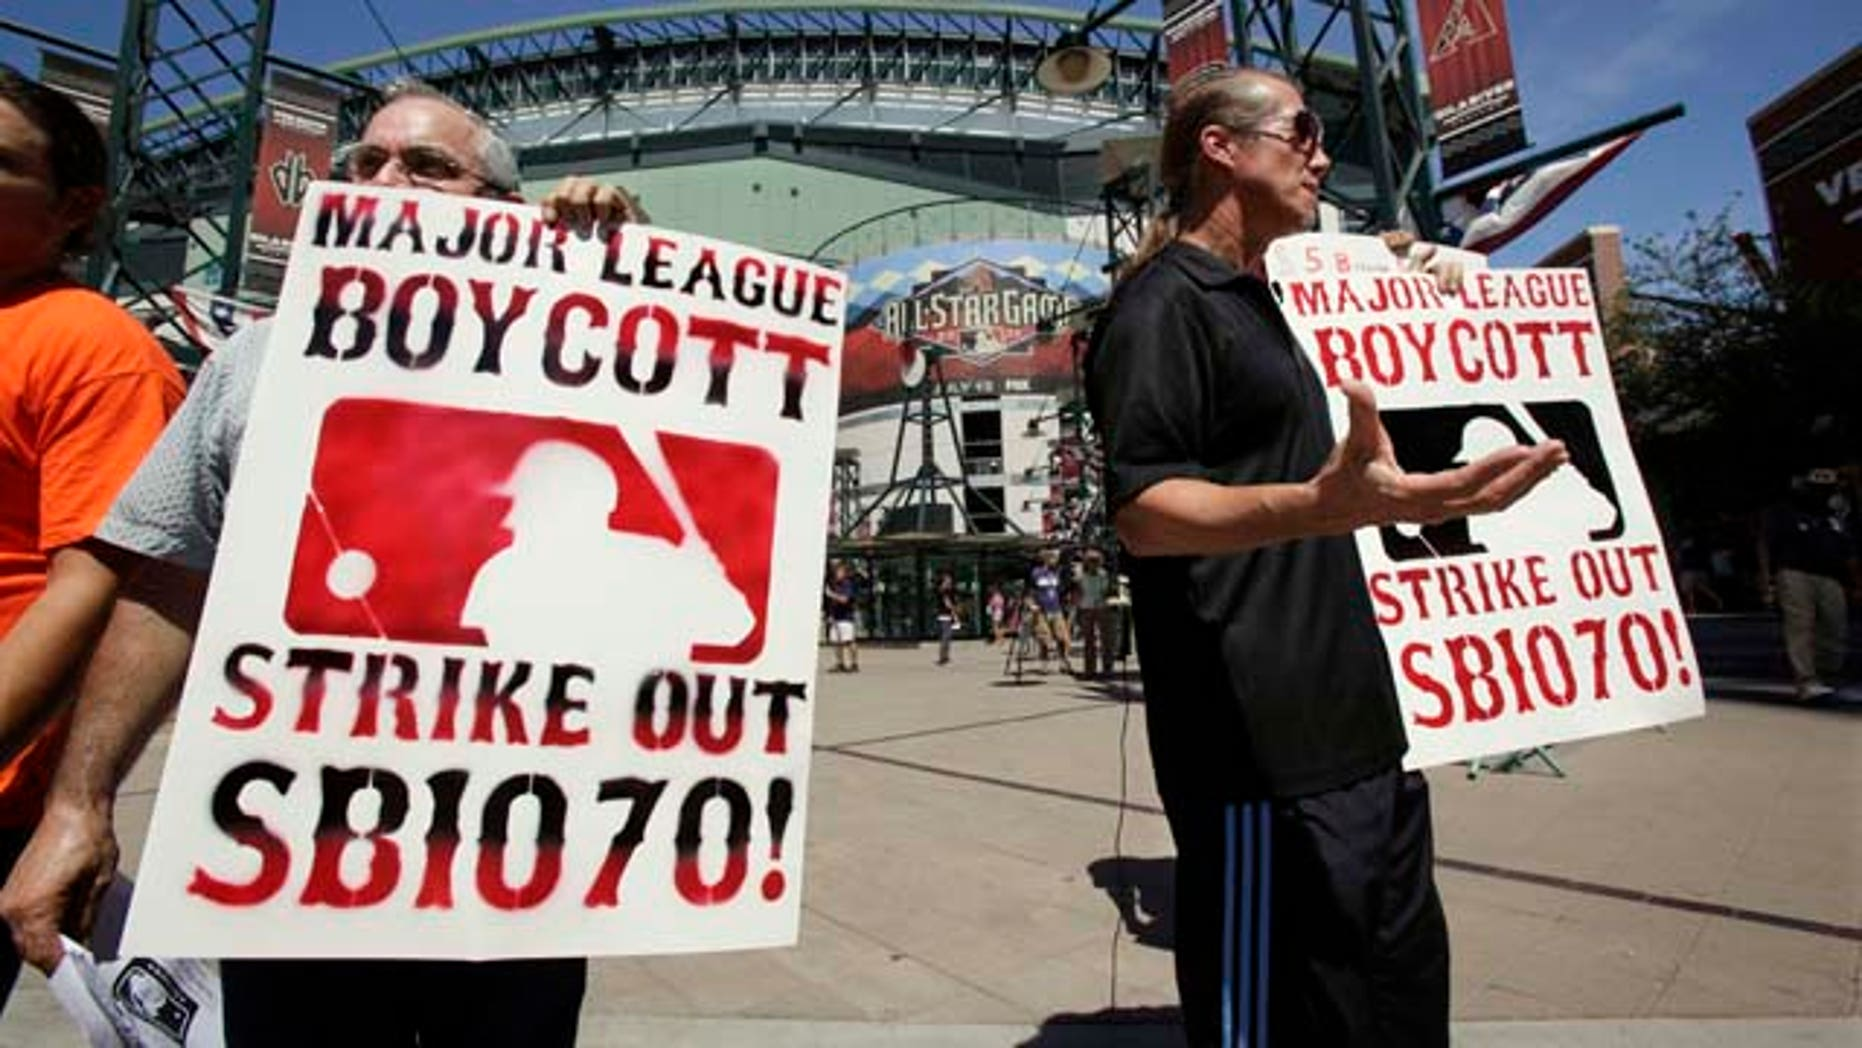 Raul Cordero, left, and Jorge Mandez protest Arizona's immigration law SB1070 outside of Chase Field before the Home Run Derby for the MLB All-Star baseball game Monday, July 11, 2011, in Phoenix. (AP Photo/Matt York)